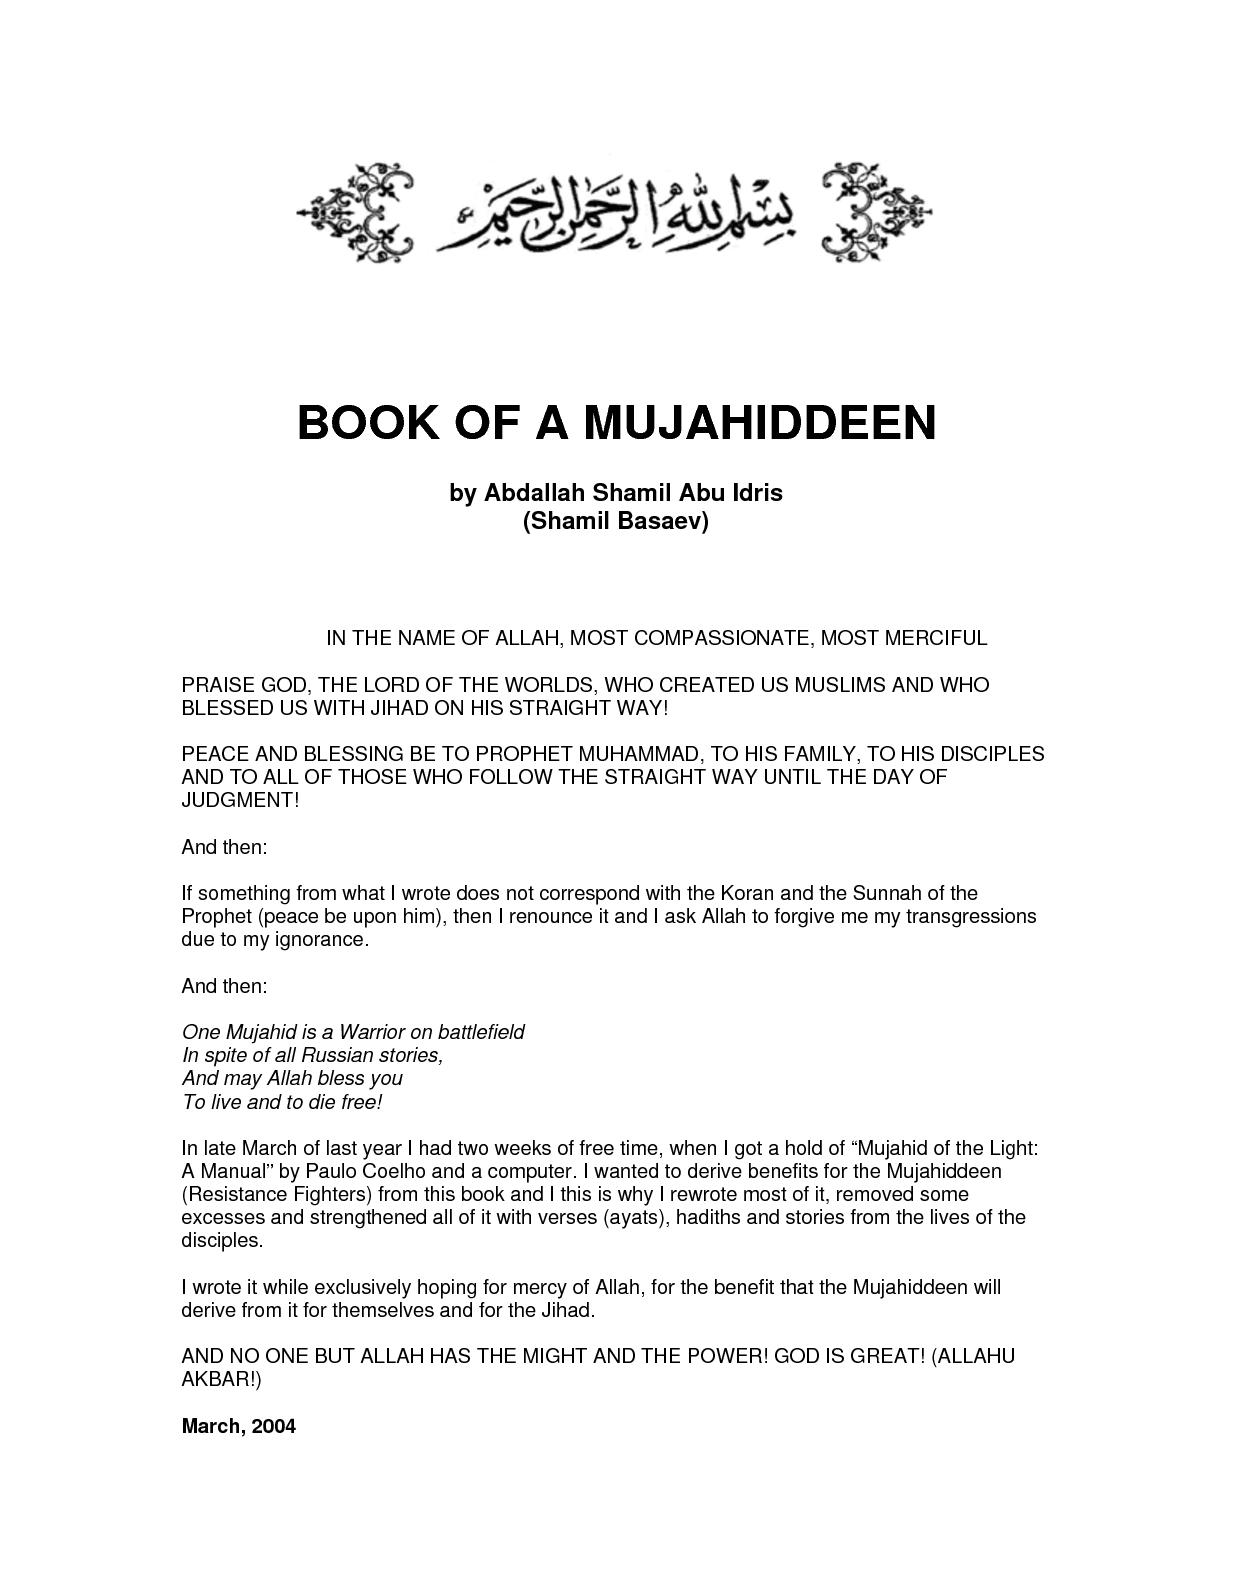 Book Of A Mujahideen Www Islamicline Com